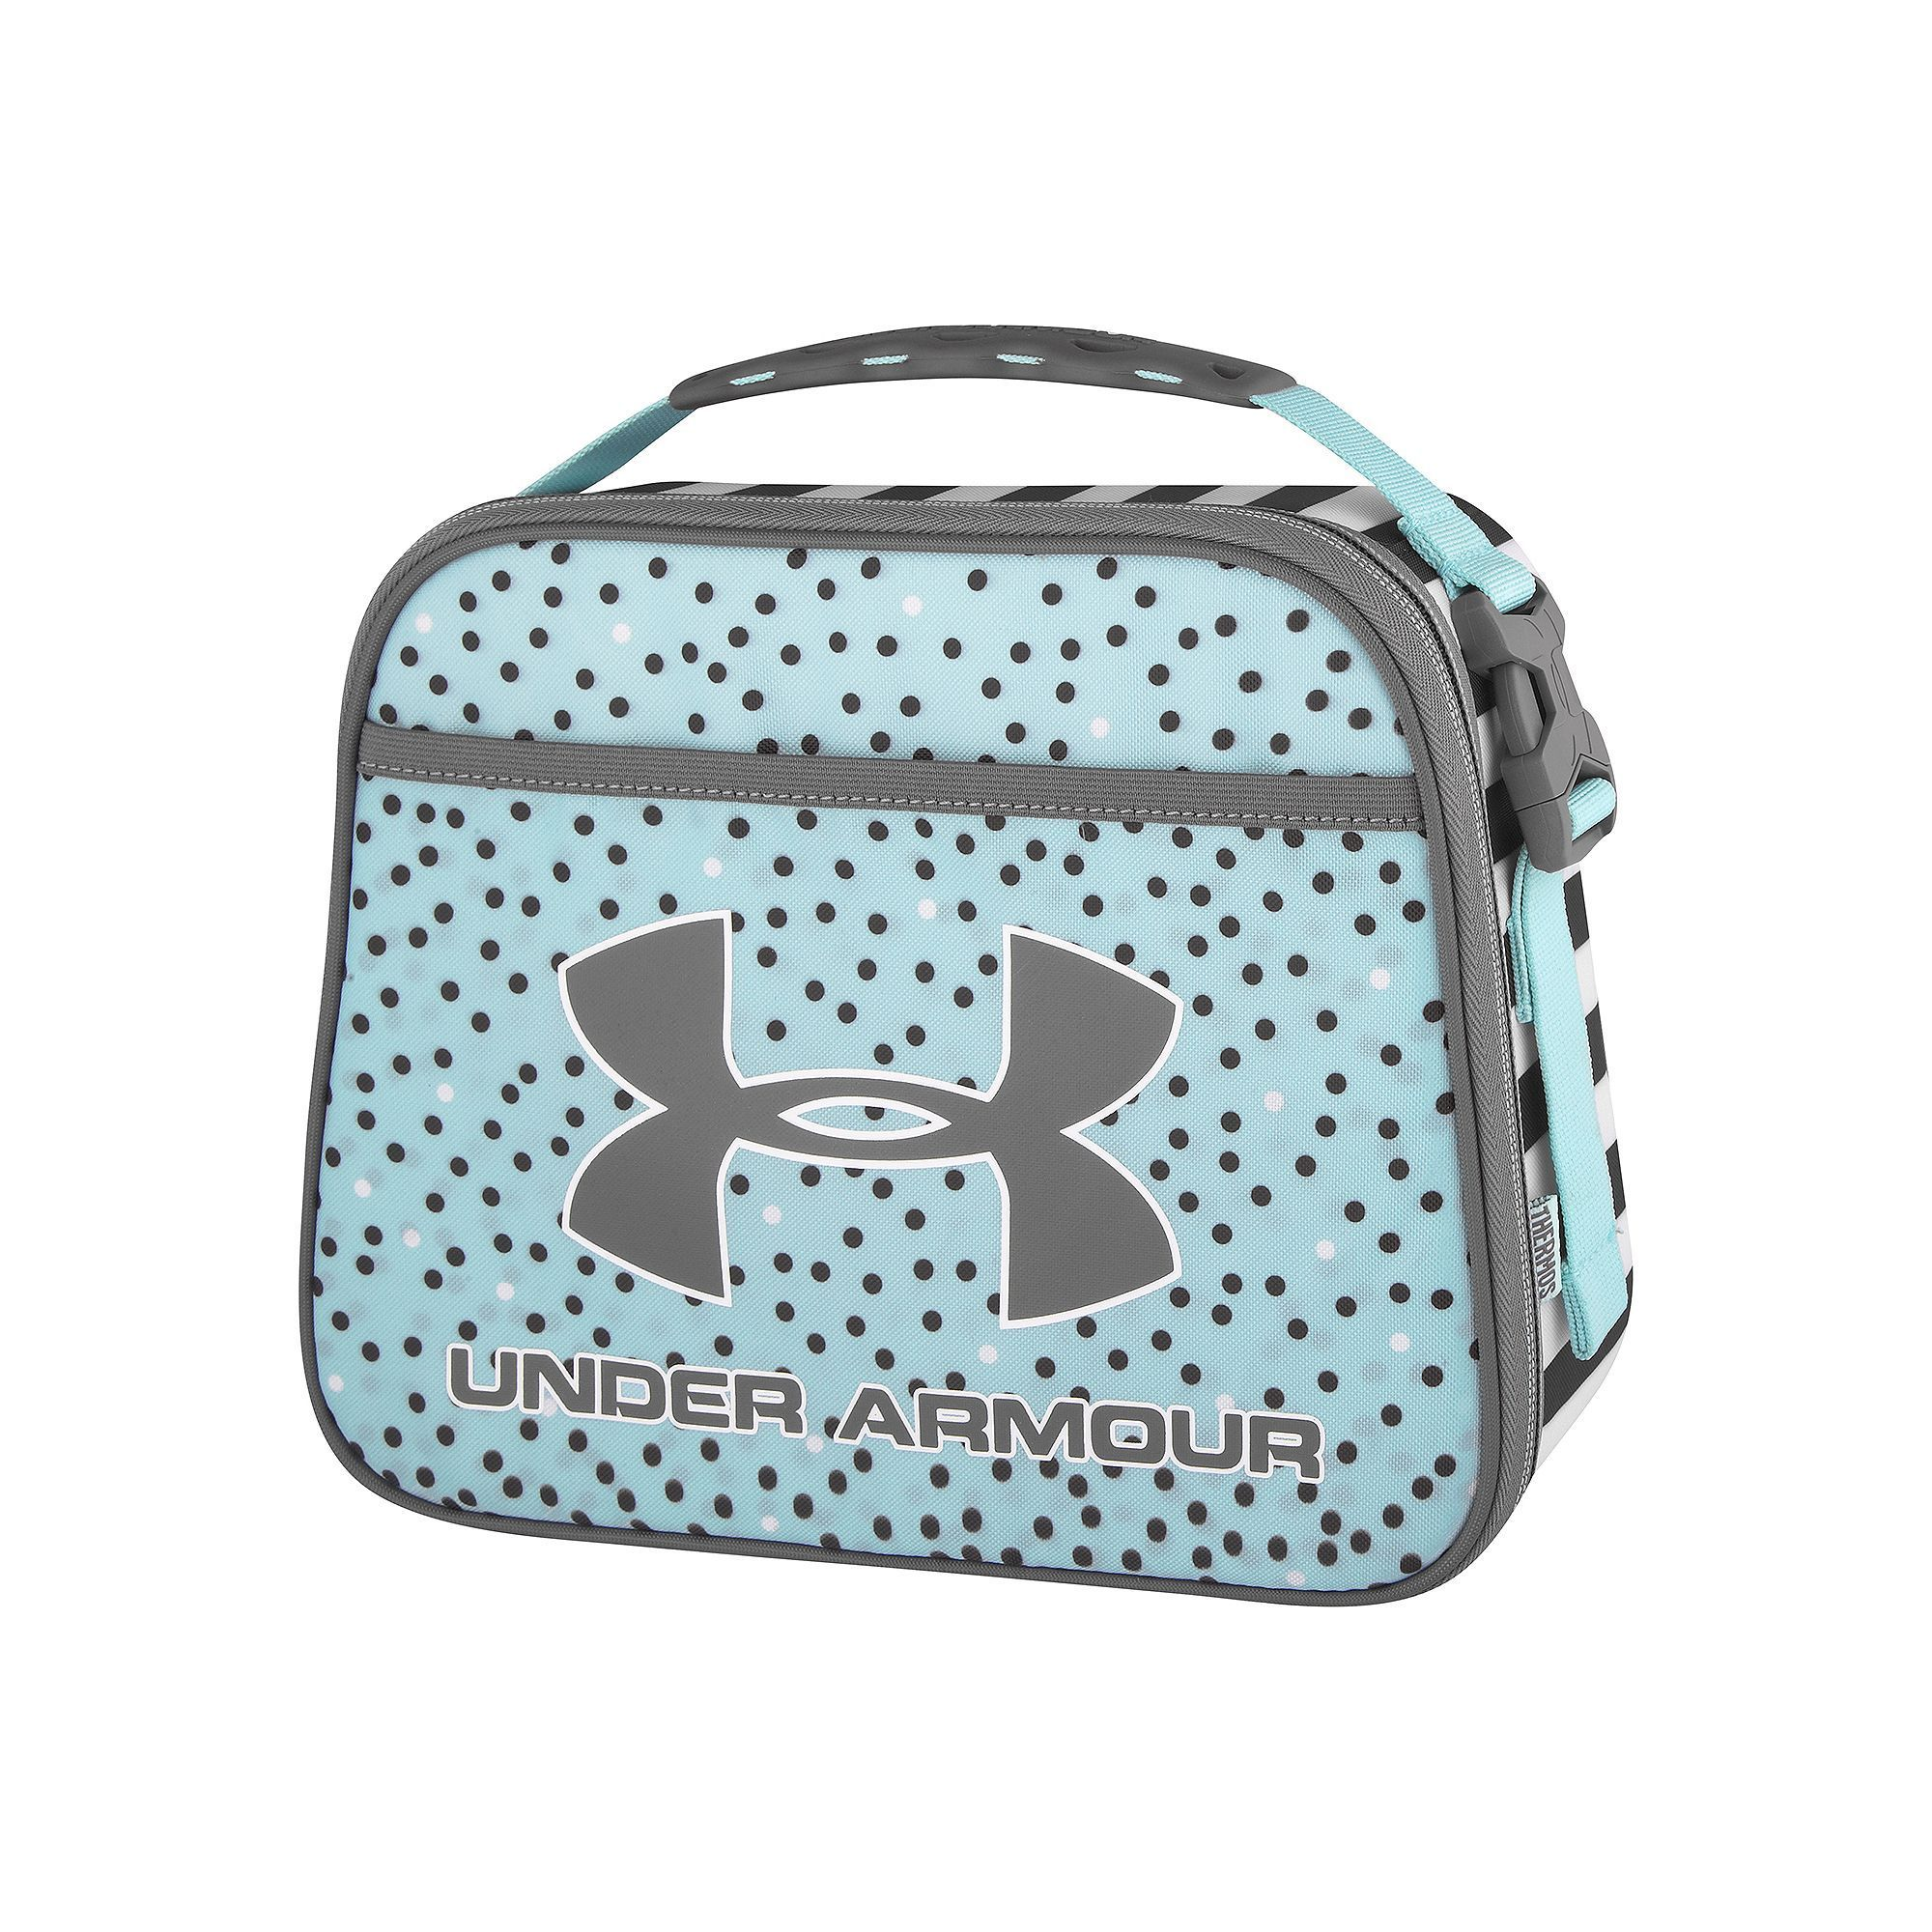 cde3f78a2304 Under Armour Girls Lunch Box in 2019